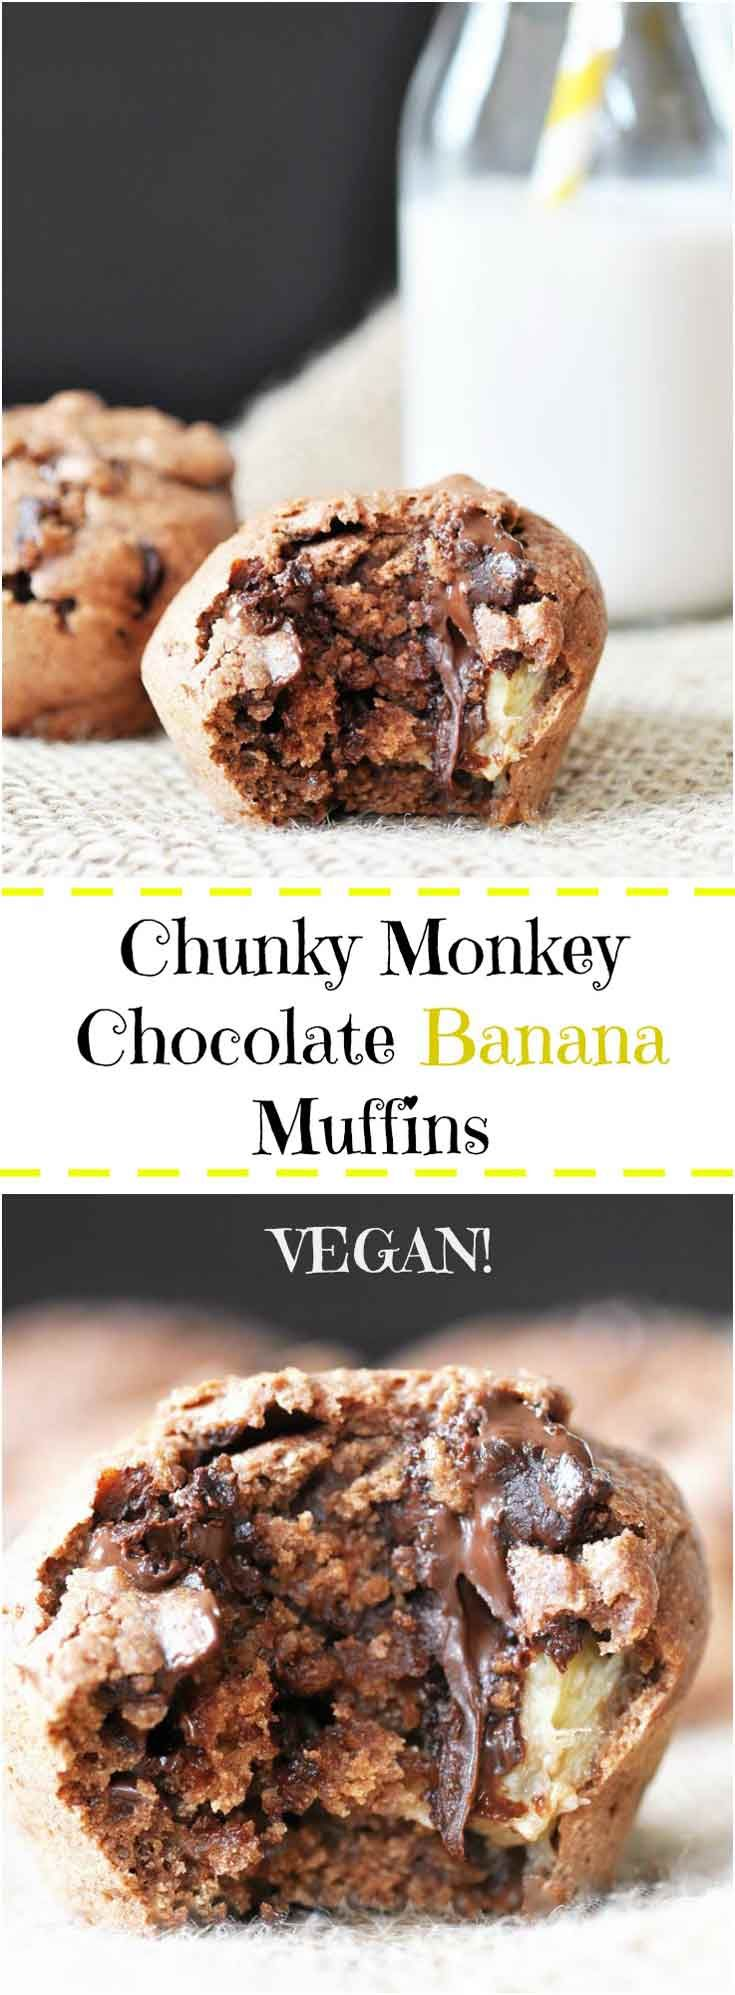 Chunky Monkey Chocolate Banana Muffins | 7 Brunch Recipes To Make With Your Mom This Mother's Day | http://www.hercampus.com/health/food/7-brunch-recipes-make-your-mom-mothers-day